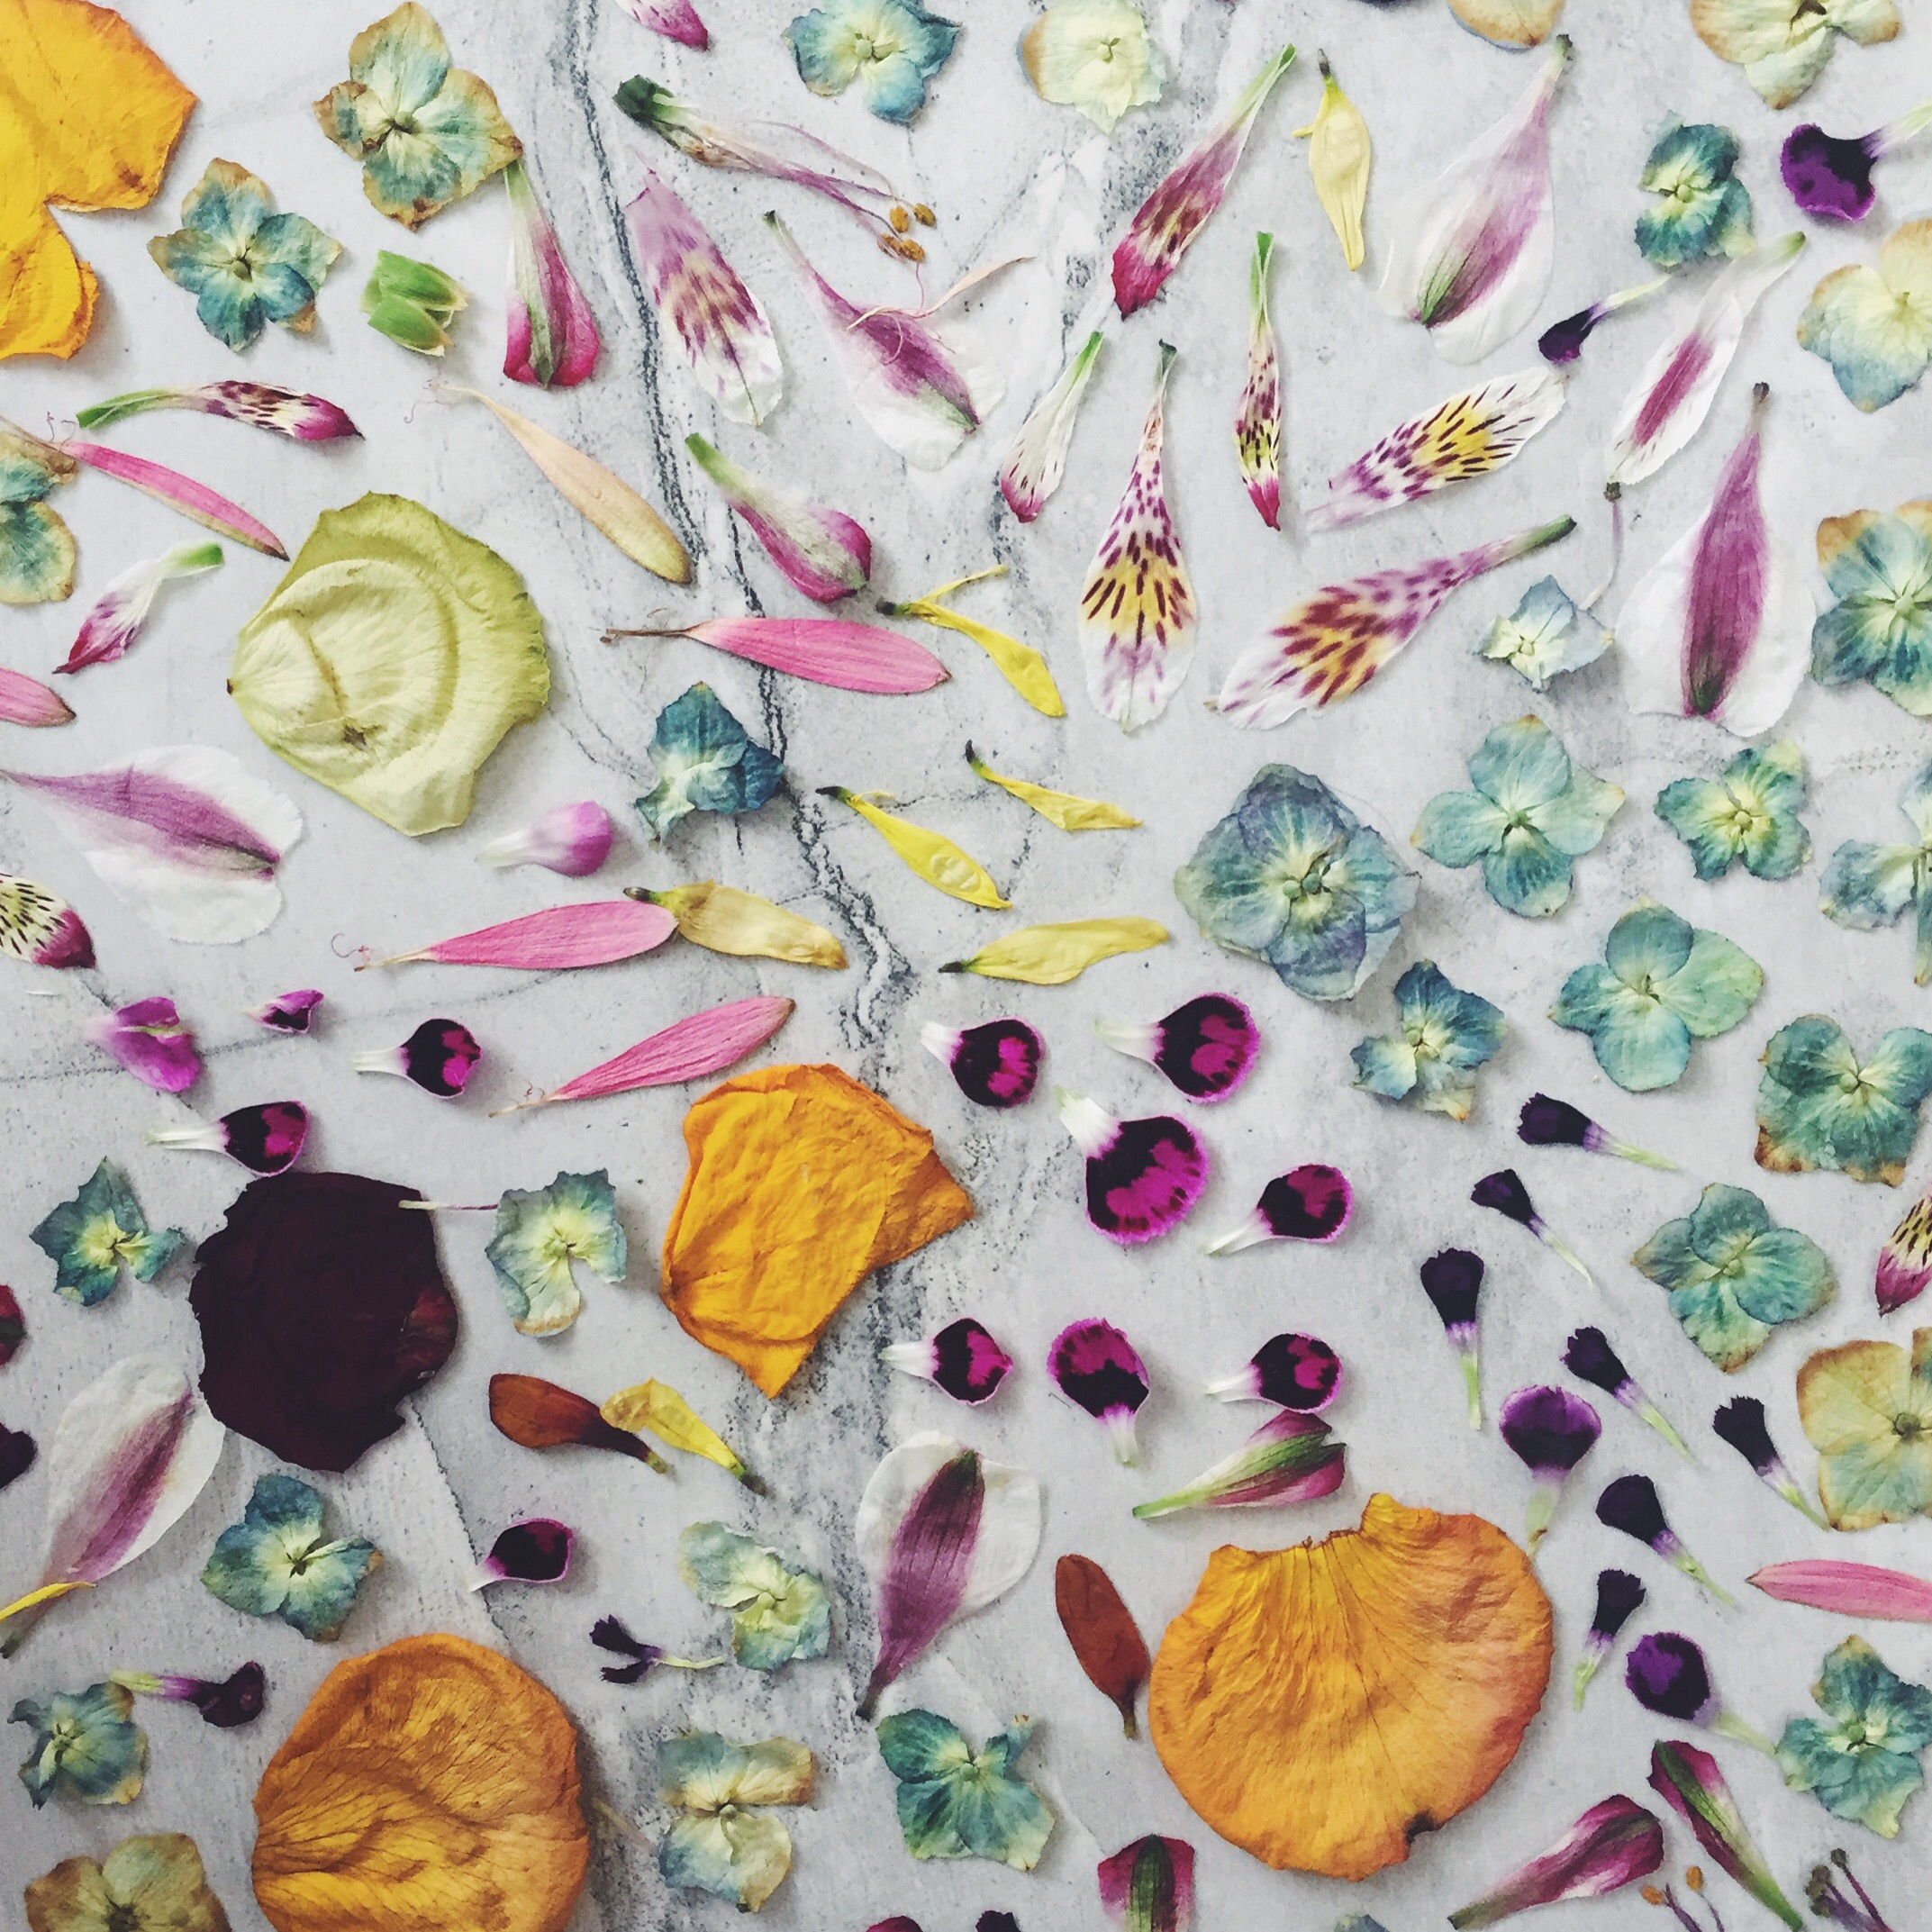 Read dried flowers for temporary tattoos